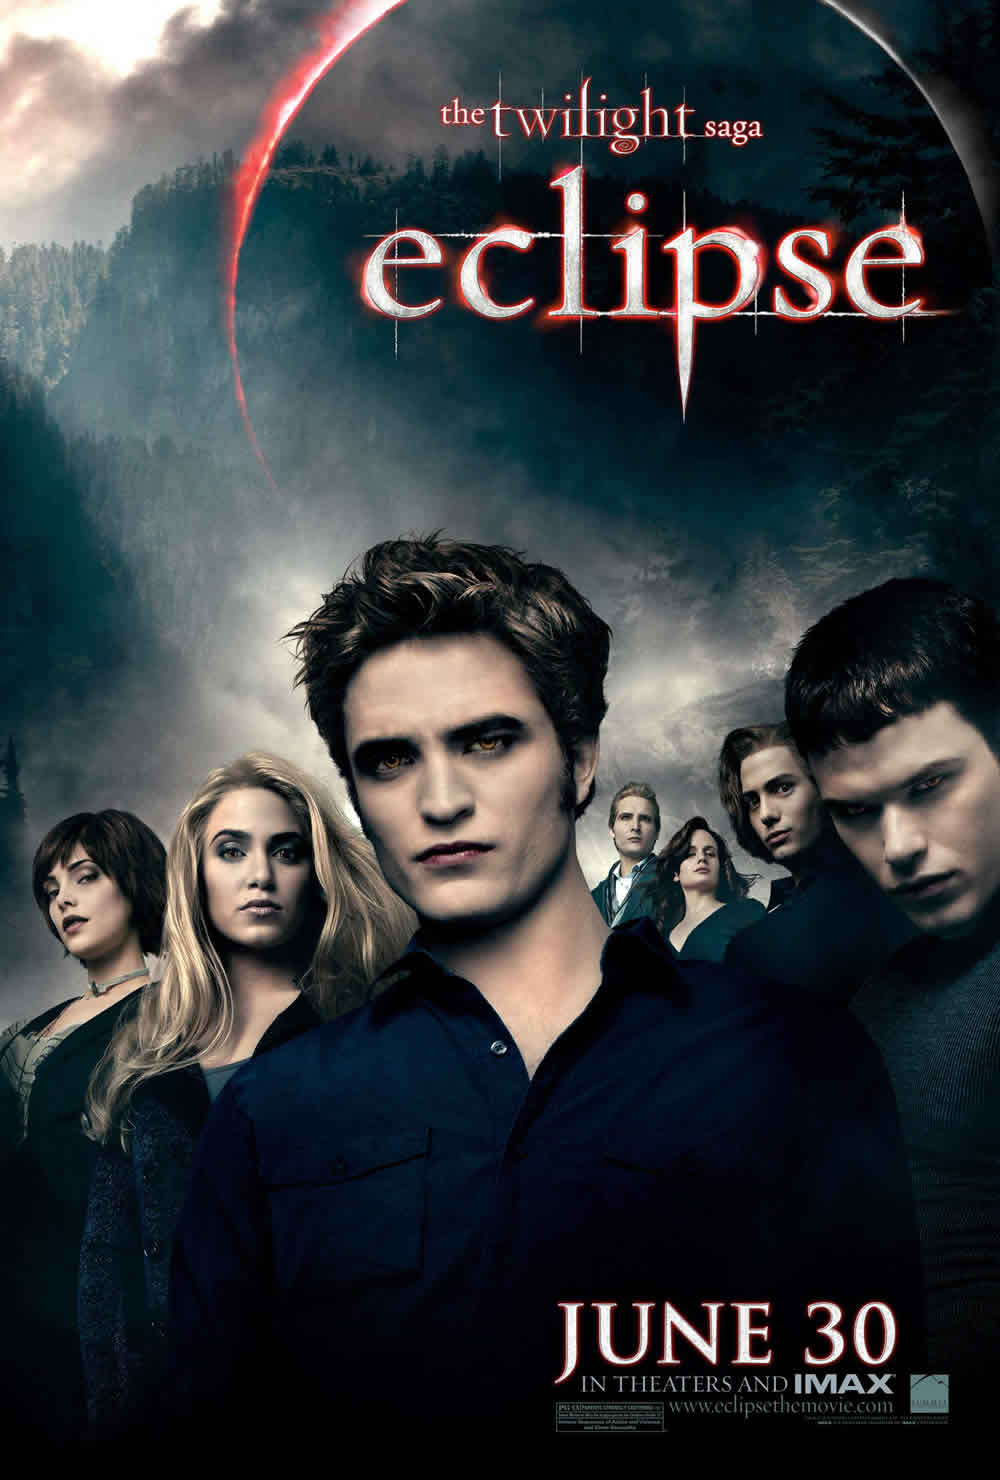 Robert Pattinson Xavier Samuel Nikki Reed Ashley Greene Eclipse poster